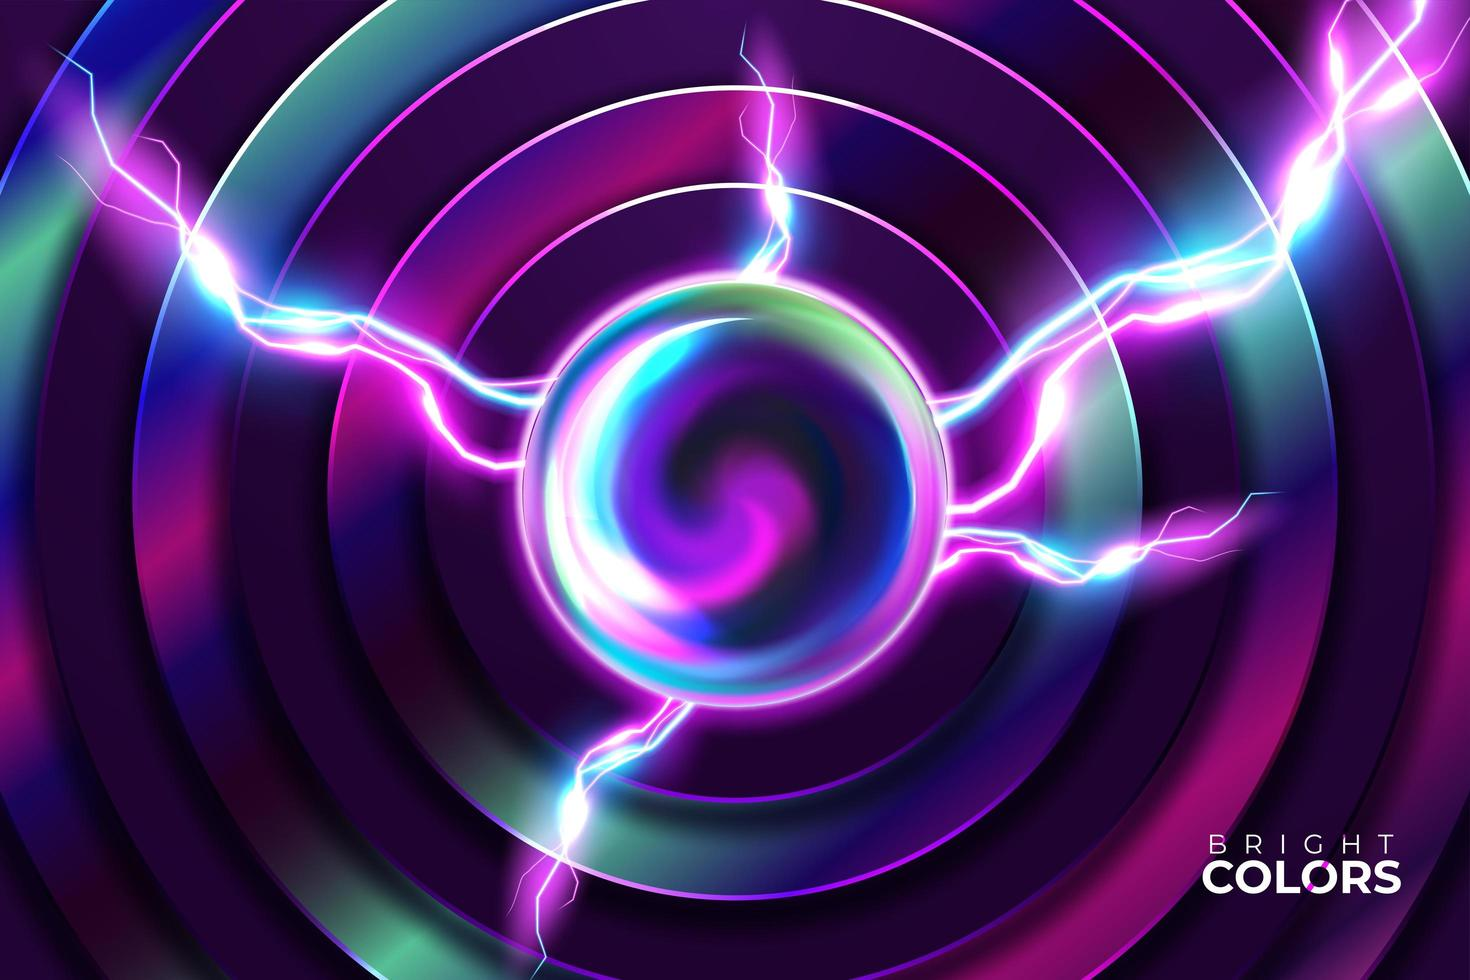 Abstract Neon Pink and Turquoise Glowing Overlapping Circles  vector